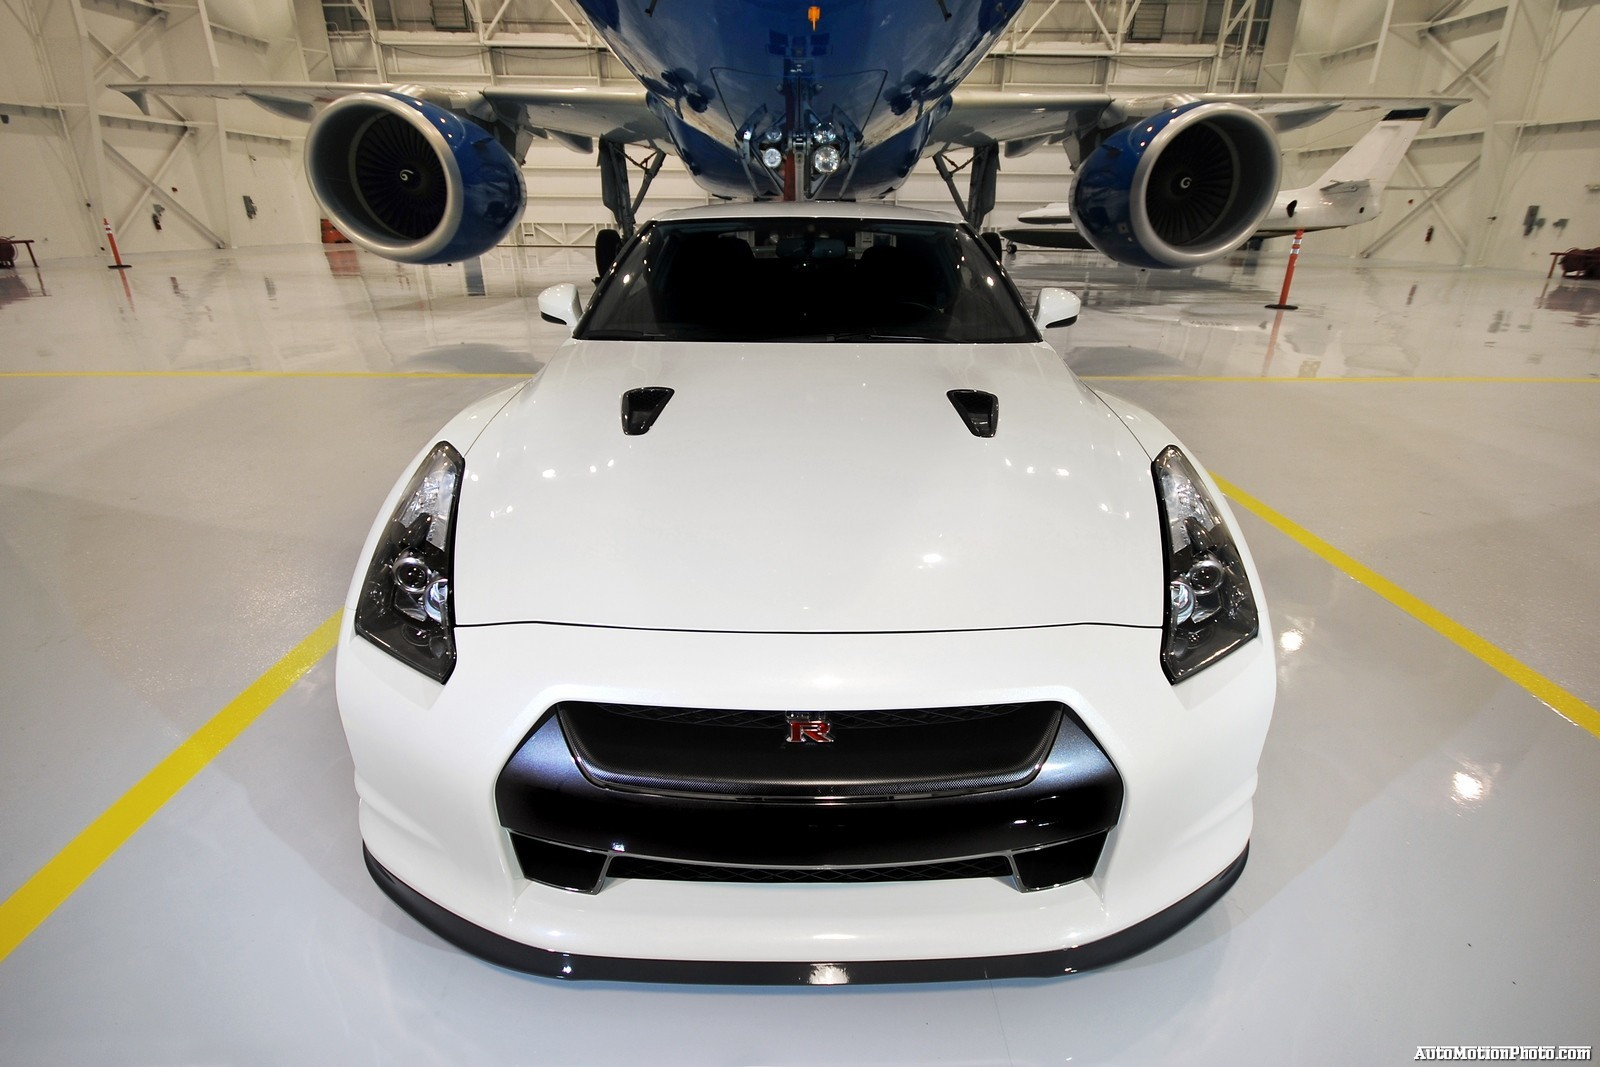 cars Nissan jet aircraft HD Wallpaper